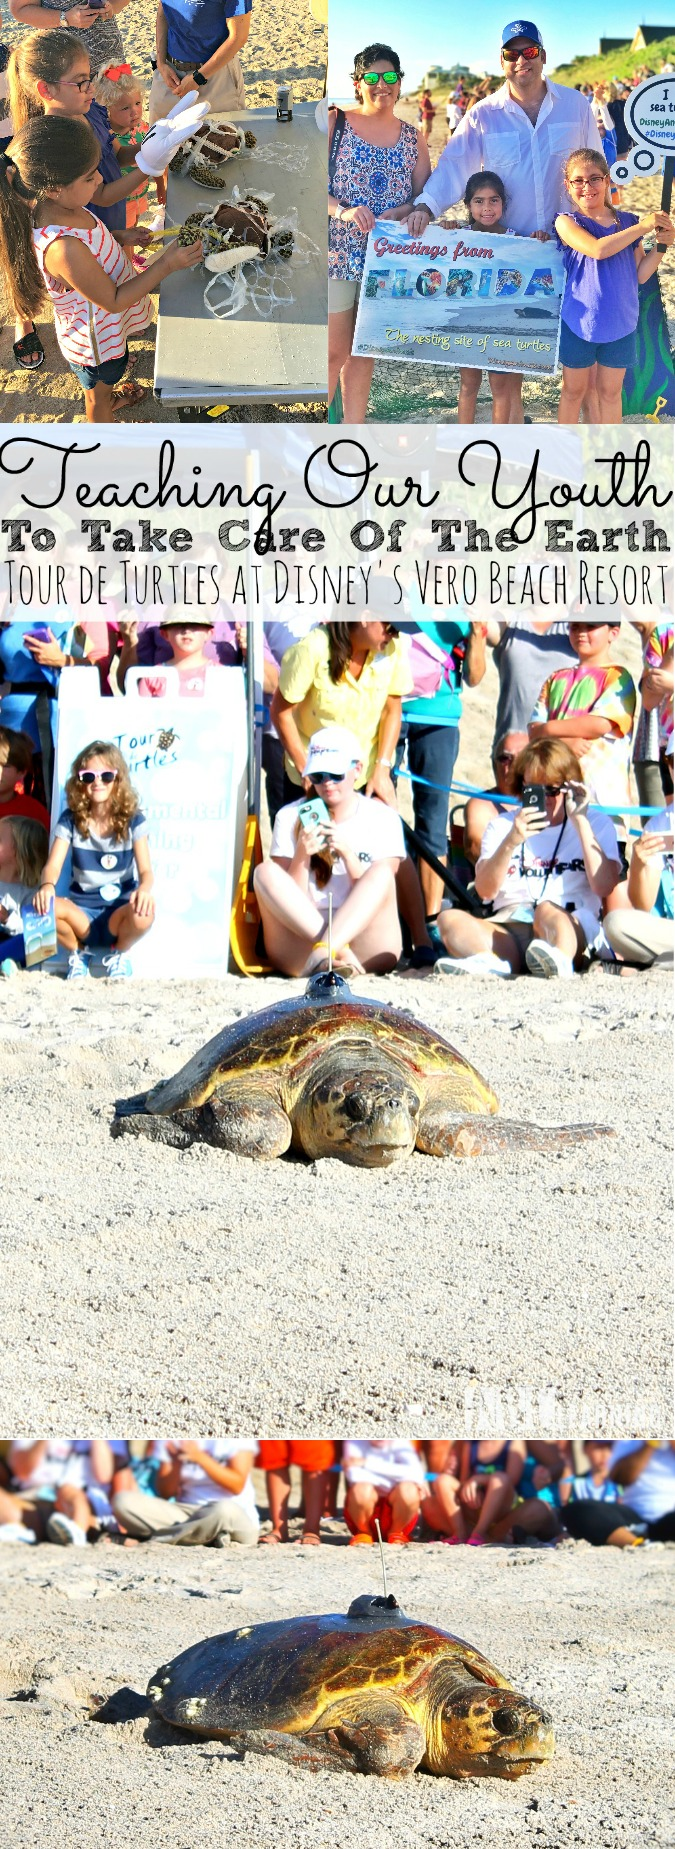 Teaching Our Youth To Take Care Of The Earth   Tour de Turtles at Disney's Vero Beach Resort - simplytodaylife.com